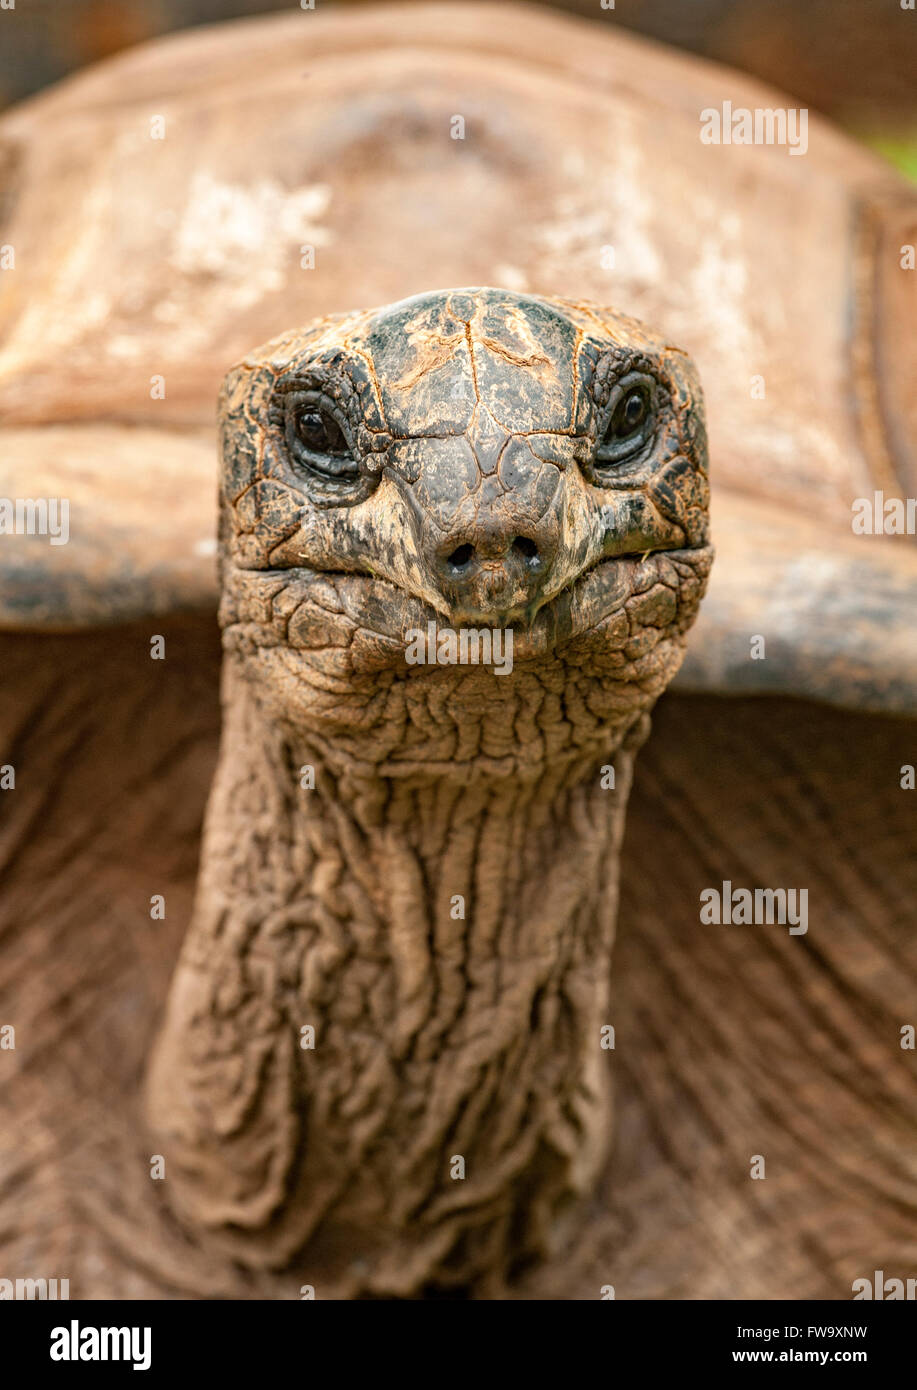 Giant tortoise at the Four Seasons Hotel in Mauritius. - Stock Image